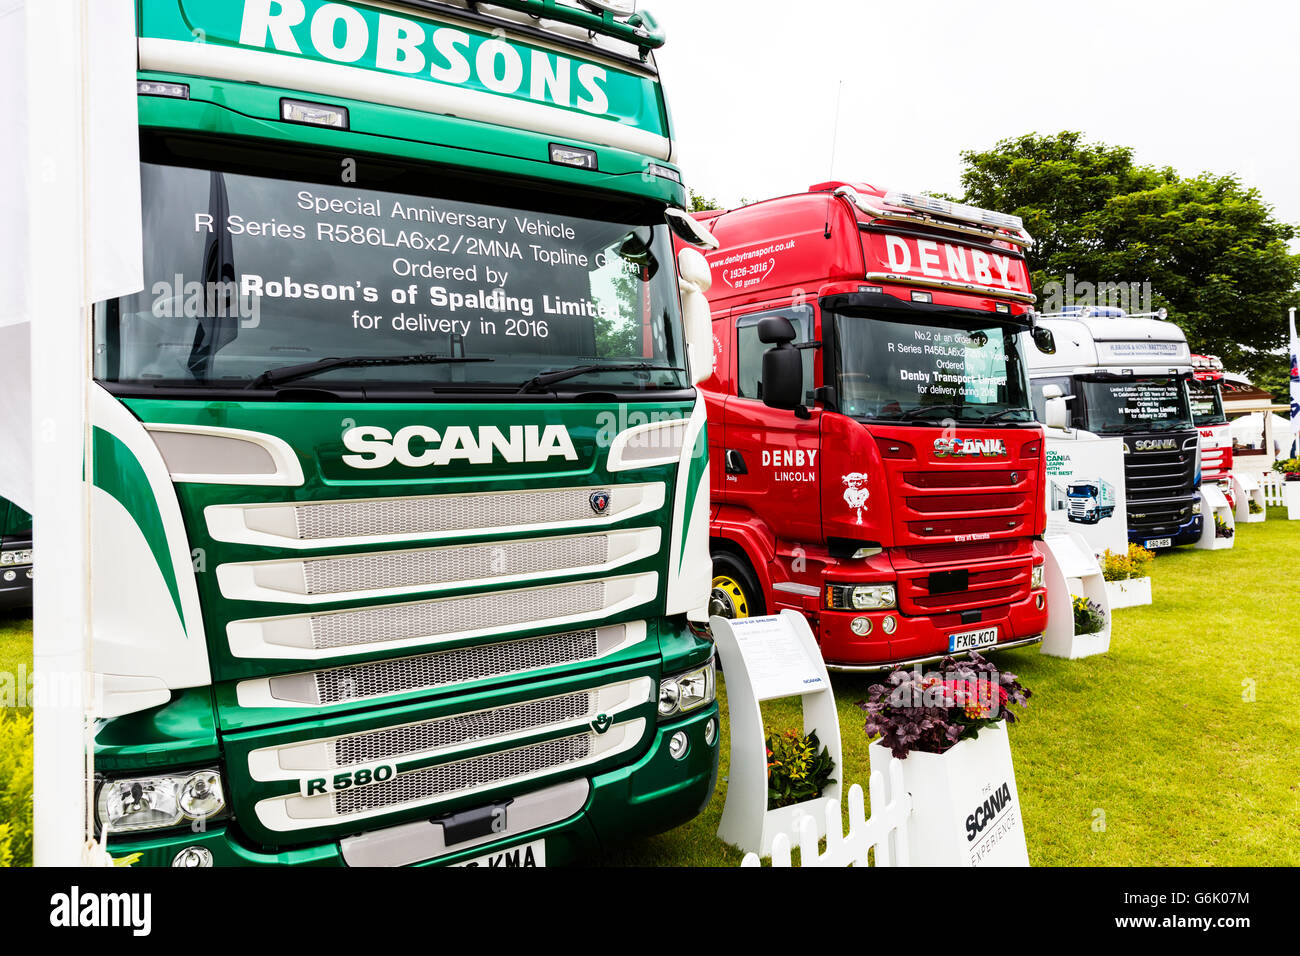 Scania lorry's trucks lorry truck cab cabs front fronts vehicle vehicles cab over design display at trade fare - Stock Image